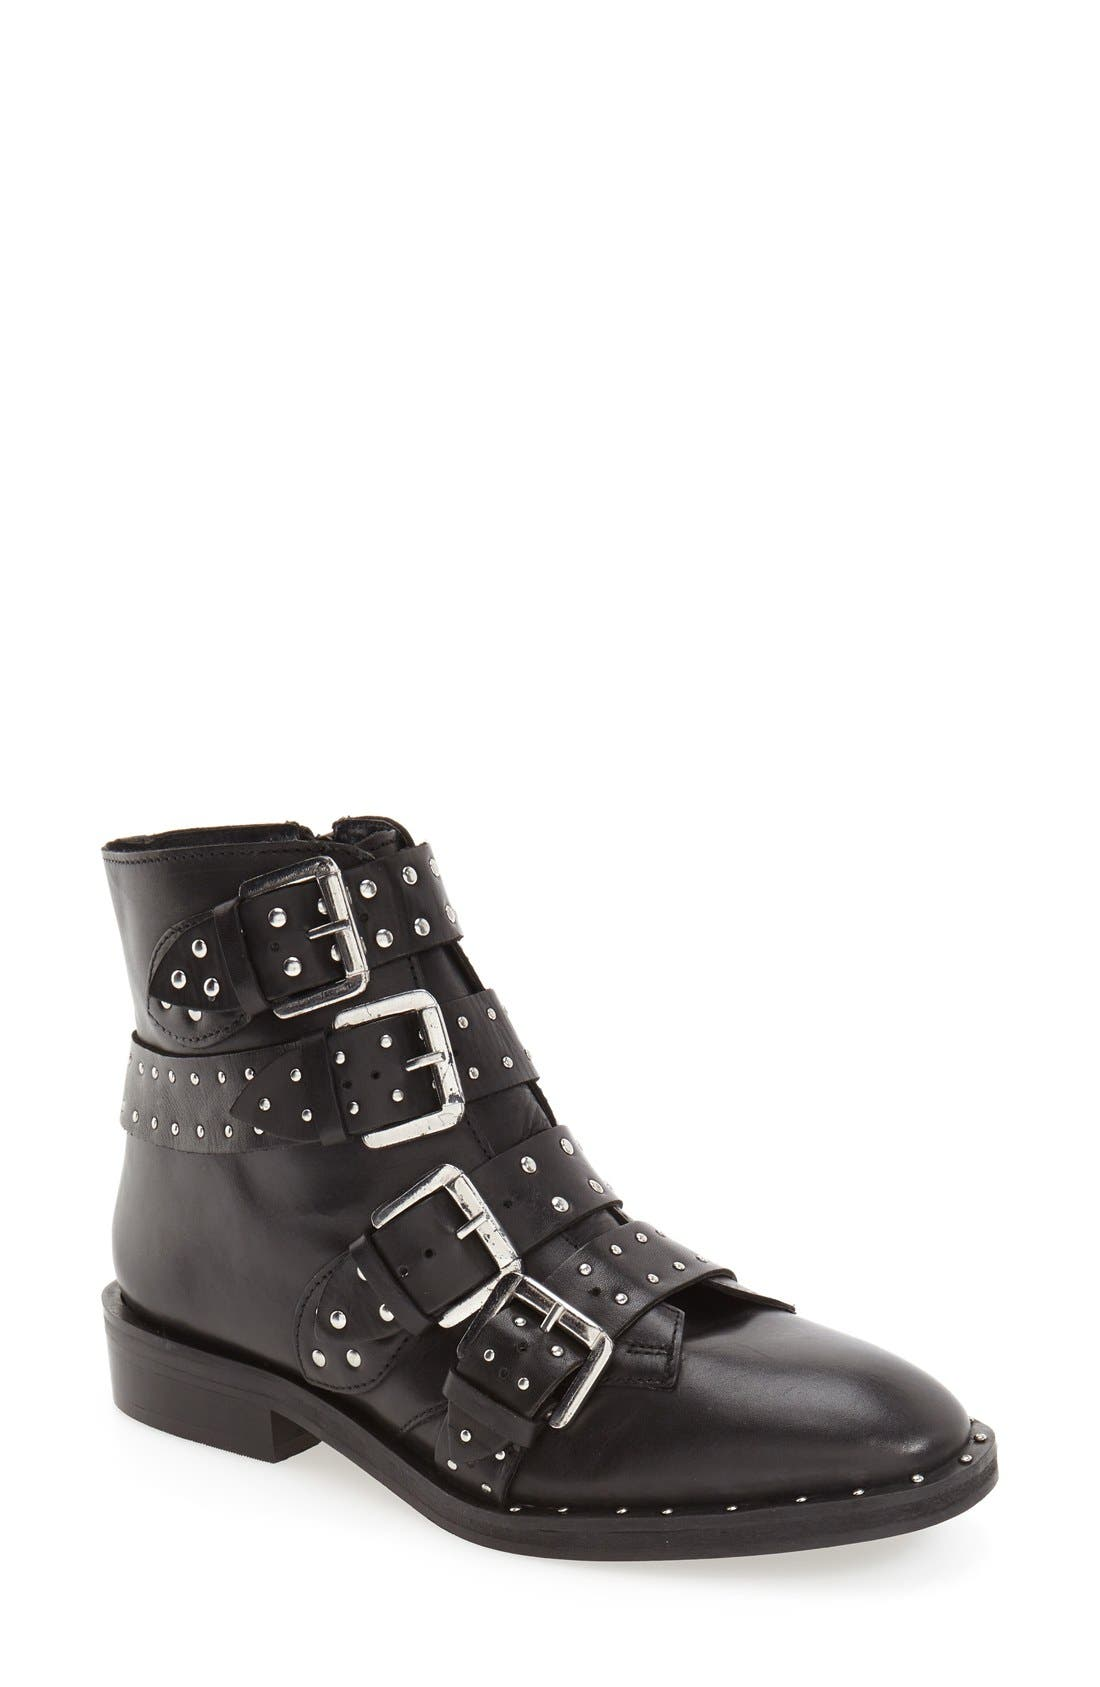 TOPSHOP 'Amy' Studded Buckle Bootie